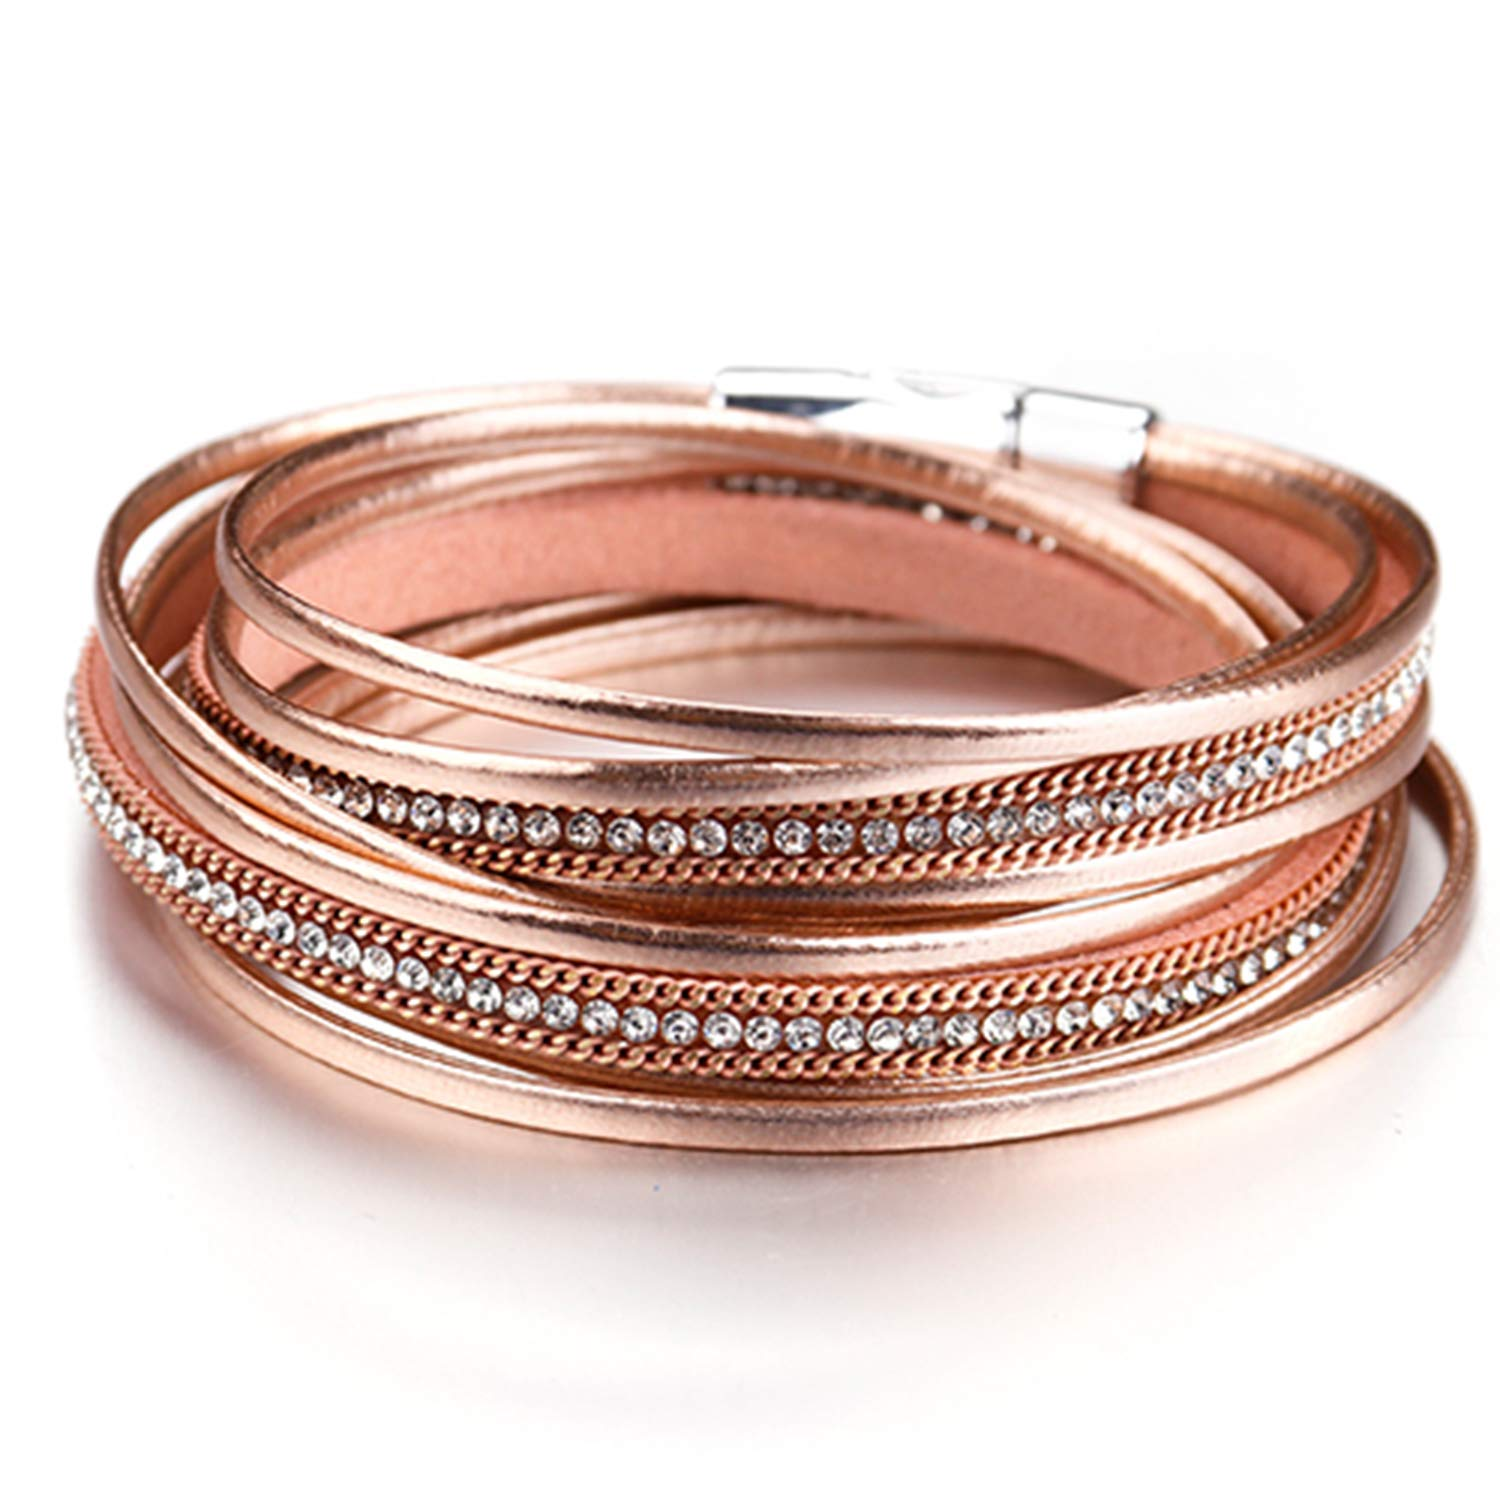 AngelLove bracelets Multiple Colour Alloy Rhinestones Leather Bangles Crystal Buckle for Women Jewelry Hot Gift